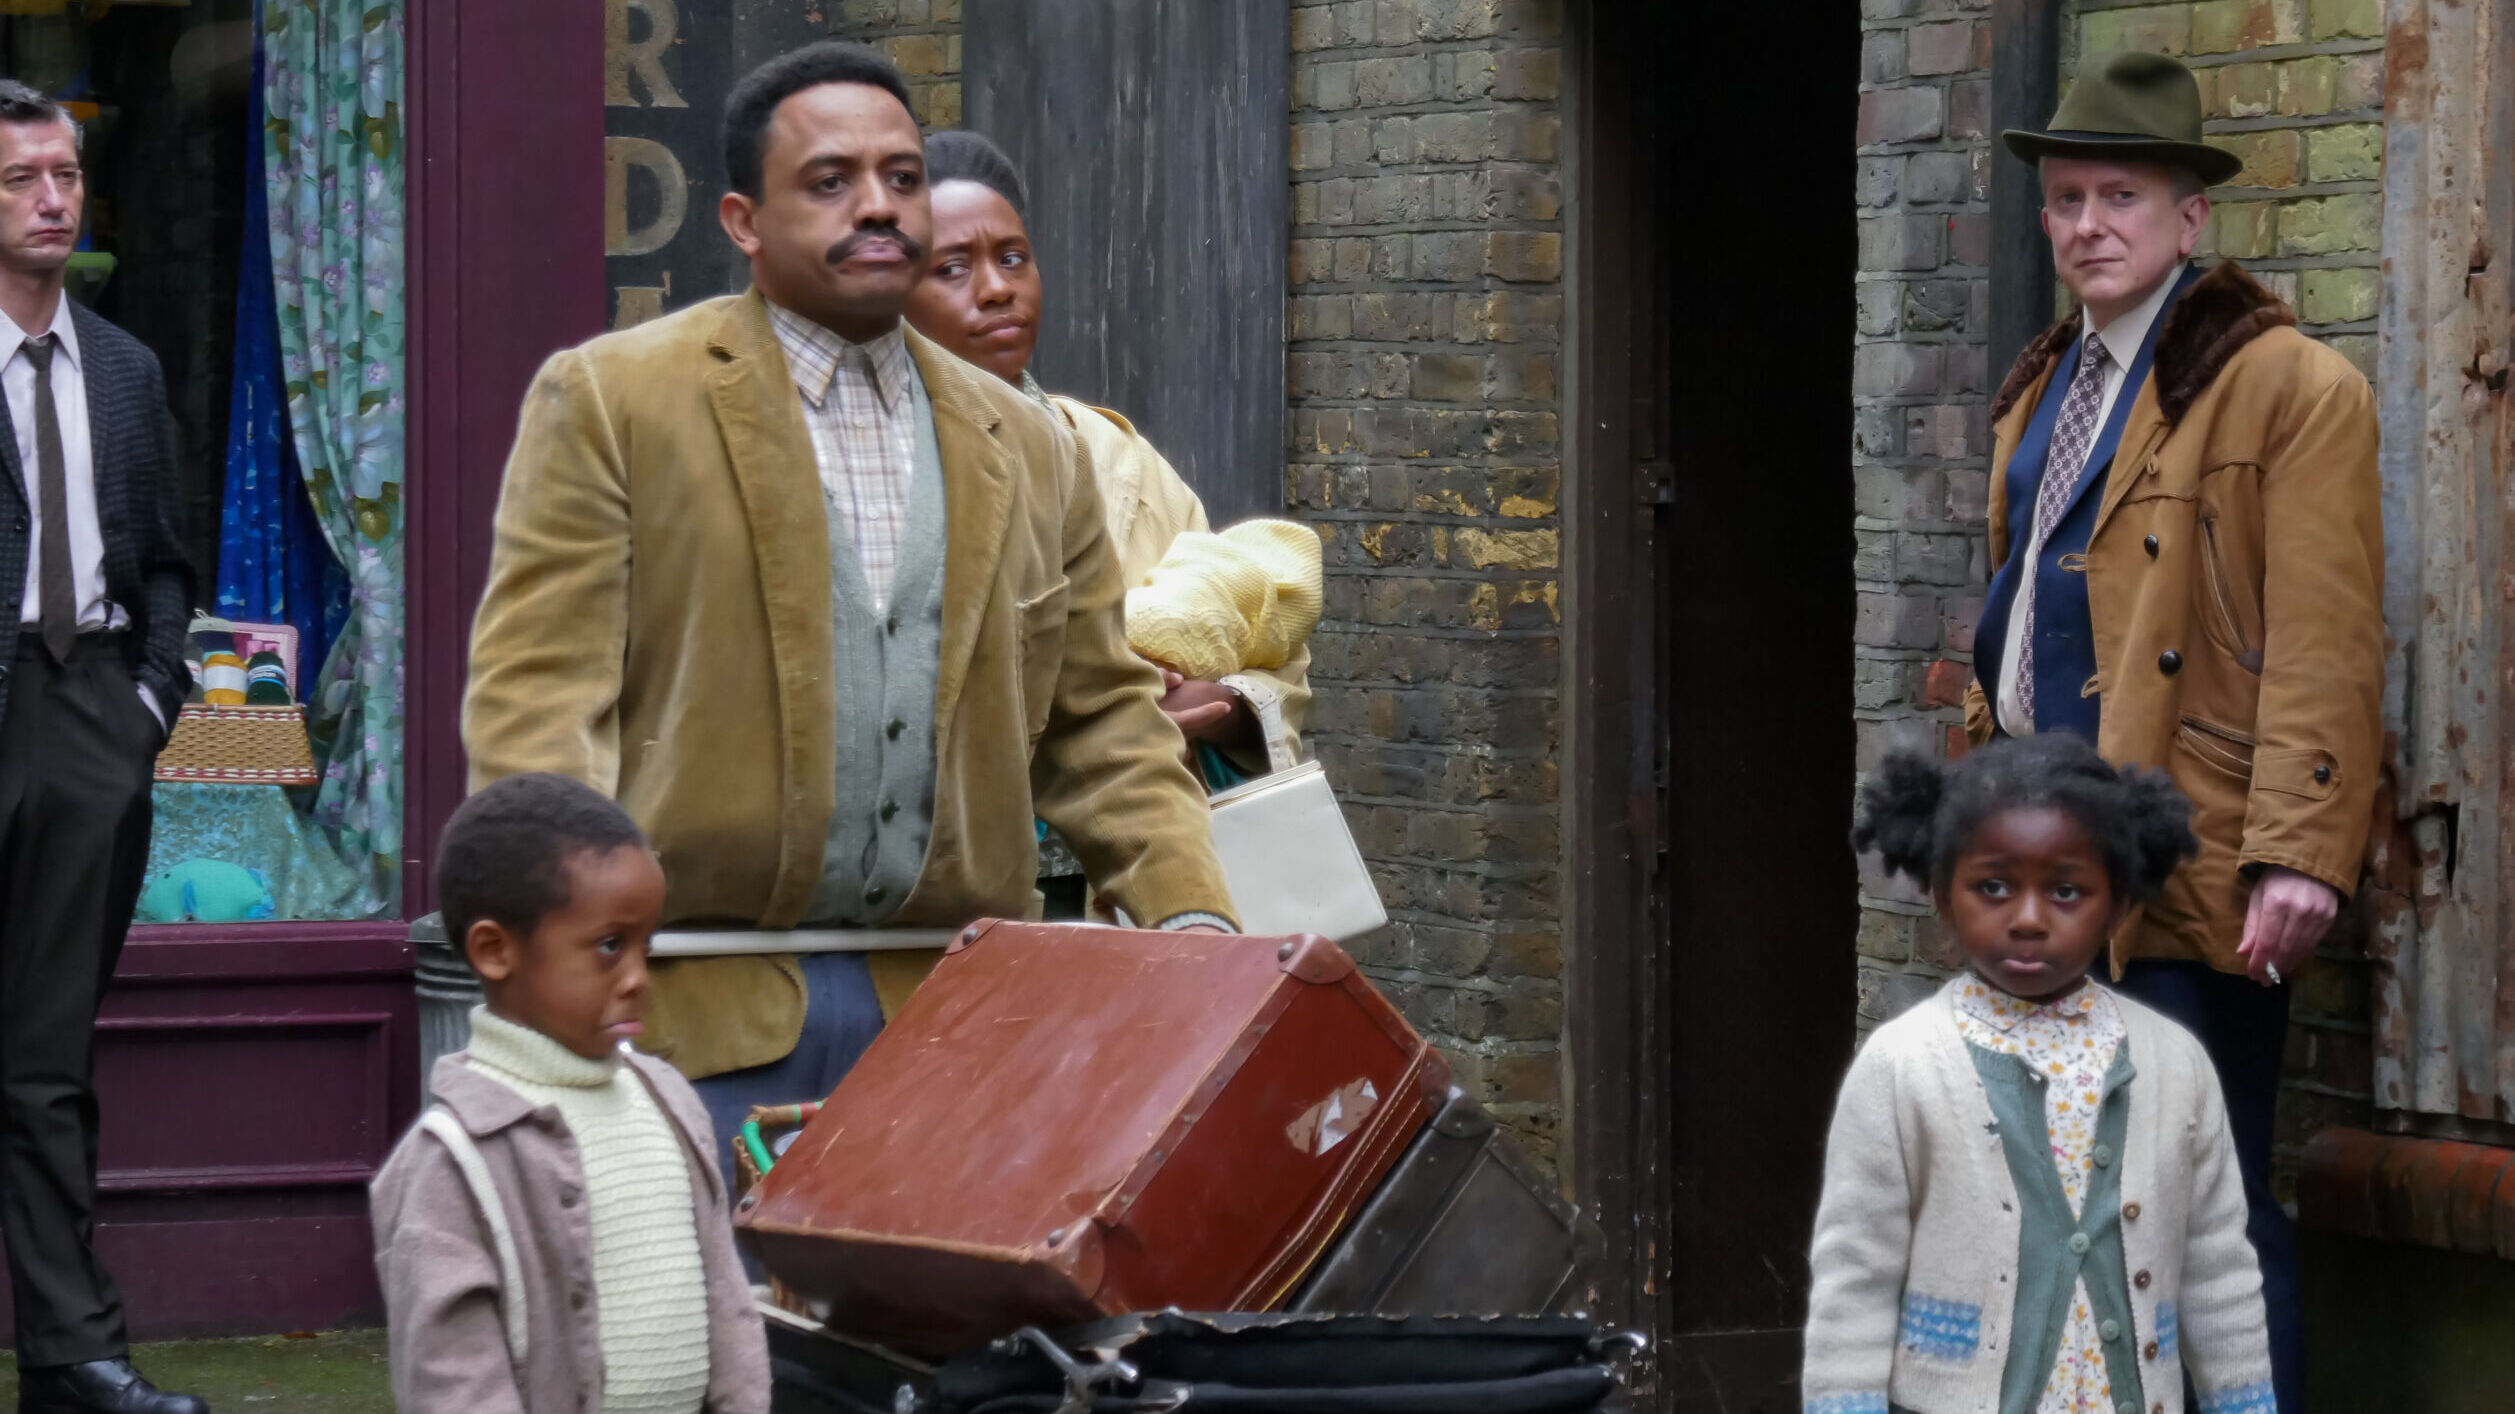 A black man is in front of a woman, and two black children are a head of him on a drab street. A white man stands against a brick building.